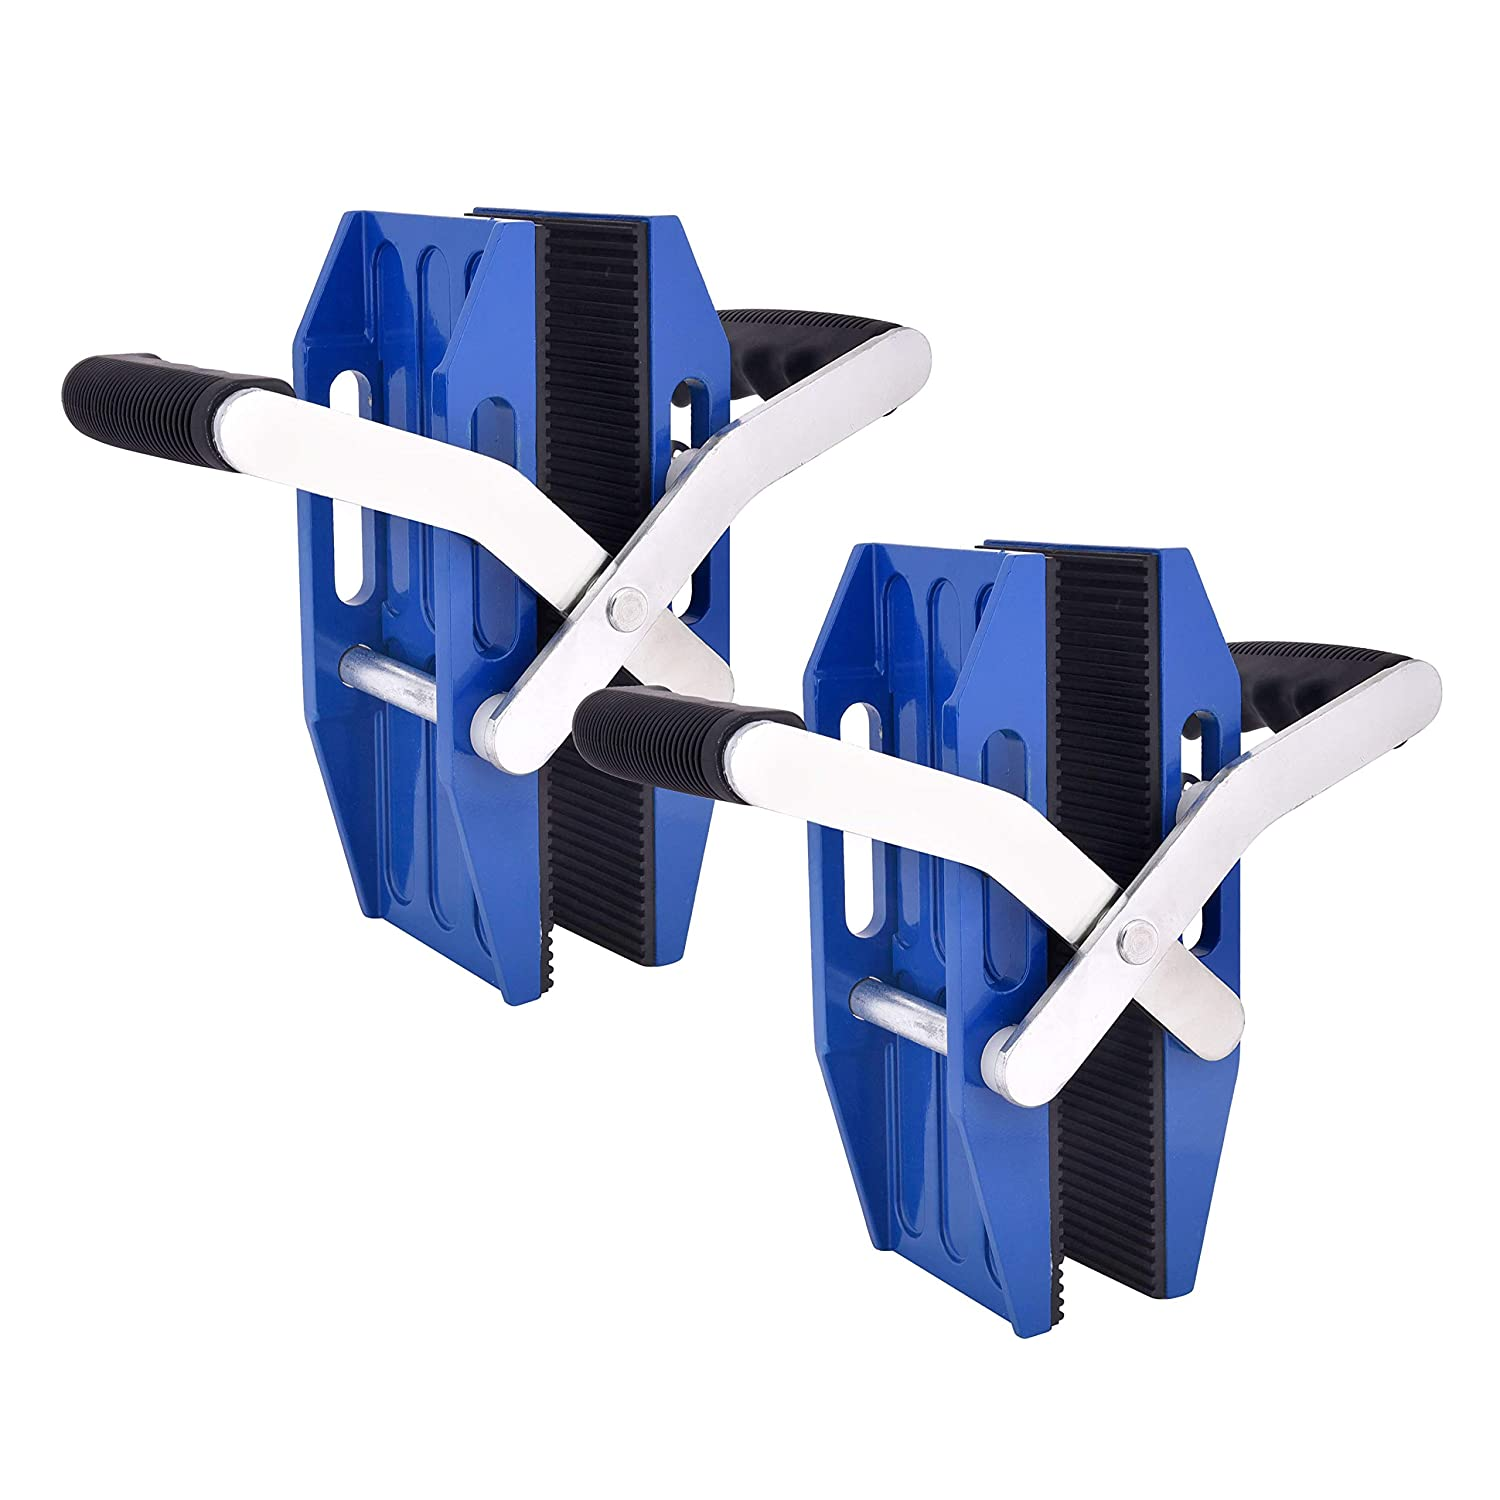 Plate Clamp Double Handed Stone Carrying Clamps Lifting Clamps Porterage Tools for Transporting of Glass Slabs//Metal Sheet//Granite Island//Countertop,Roadside Stone Clamp Curb